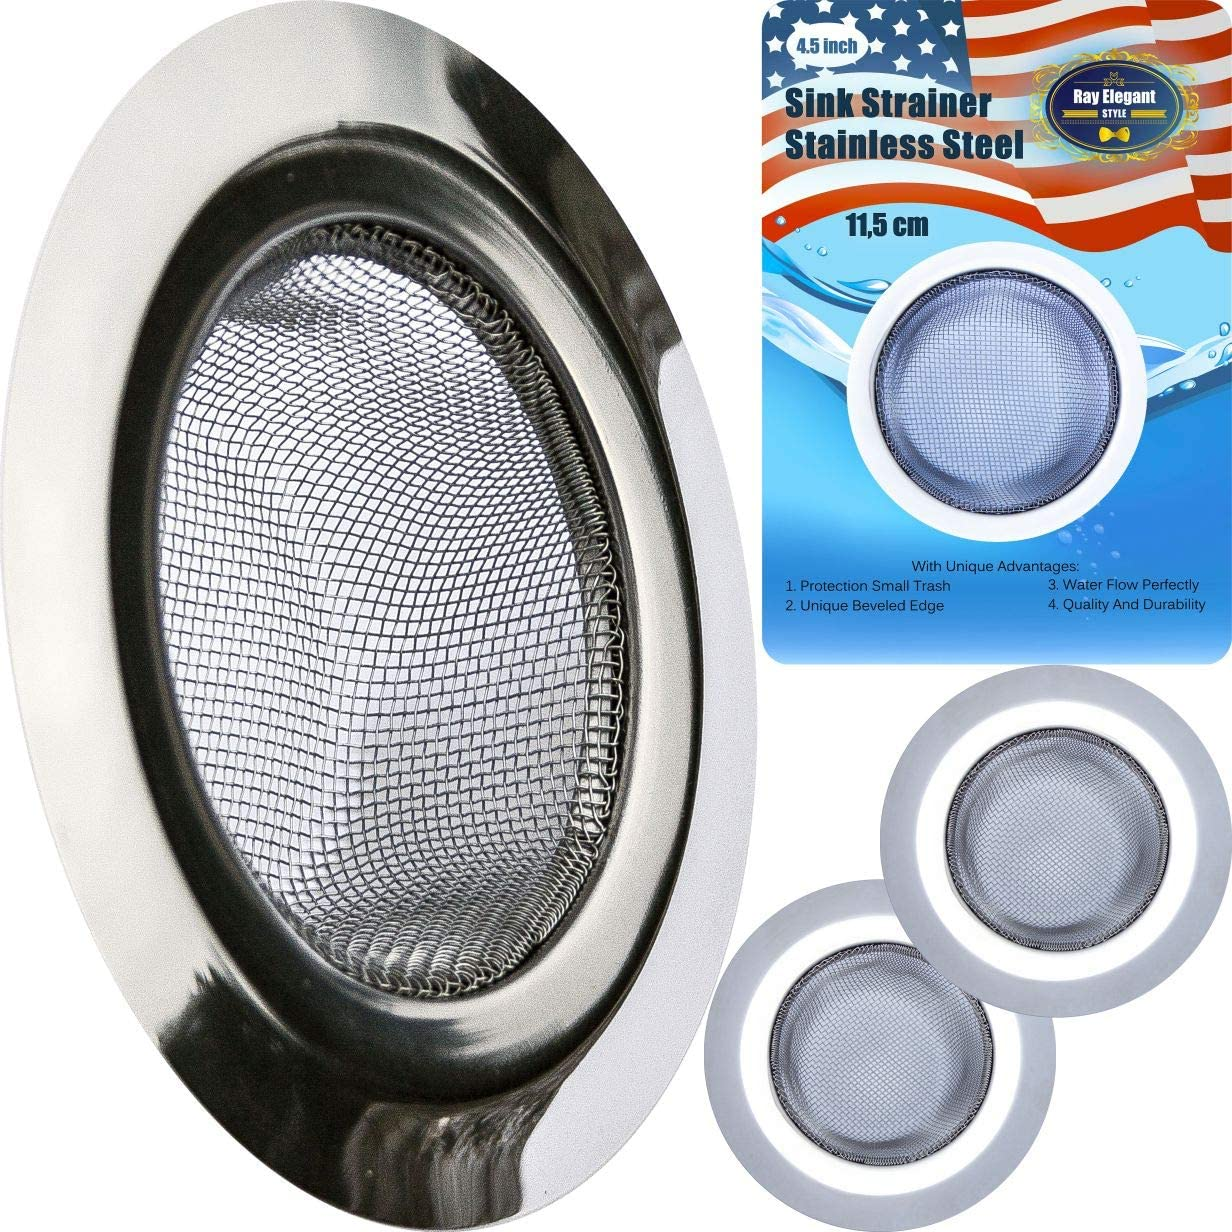 "Kitchen Sink Strainer 4.5"" Stainless Steel Sink Strainer - 2 PC Strong Clean Reliable Stainless Steel Prevent Rust Edges Deep Mesh, Quick Outflow - 4.5"" x 2.75"" x Deep 1.5"""